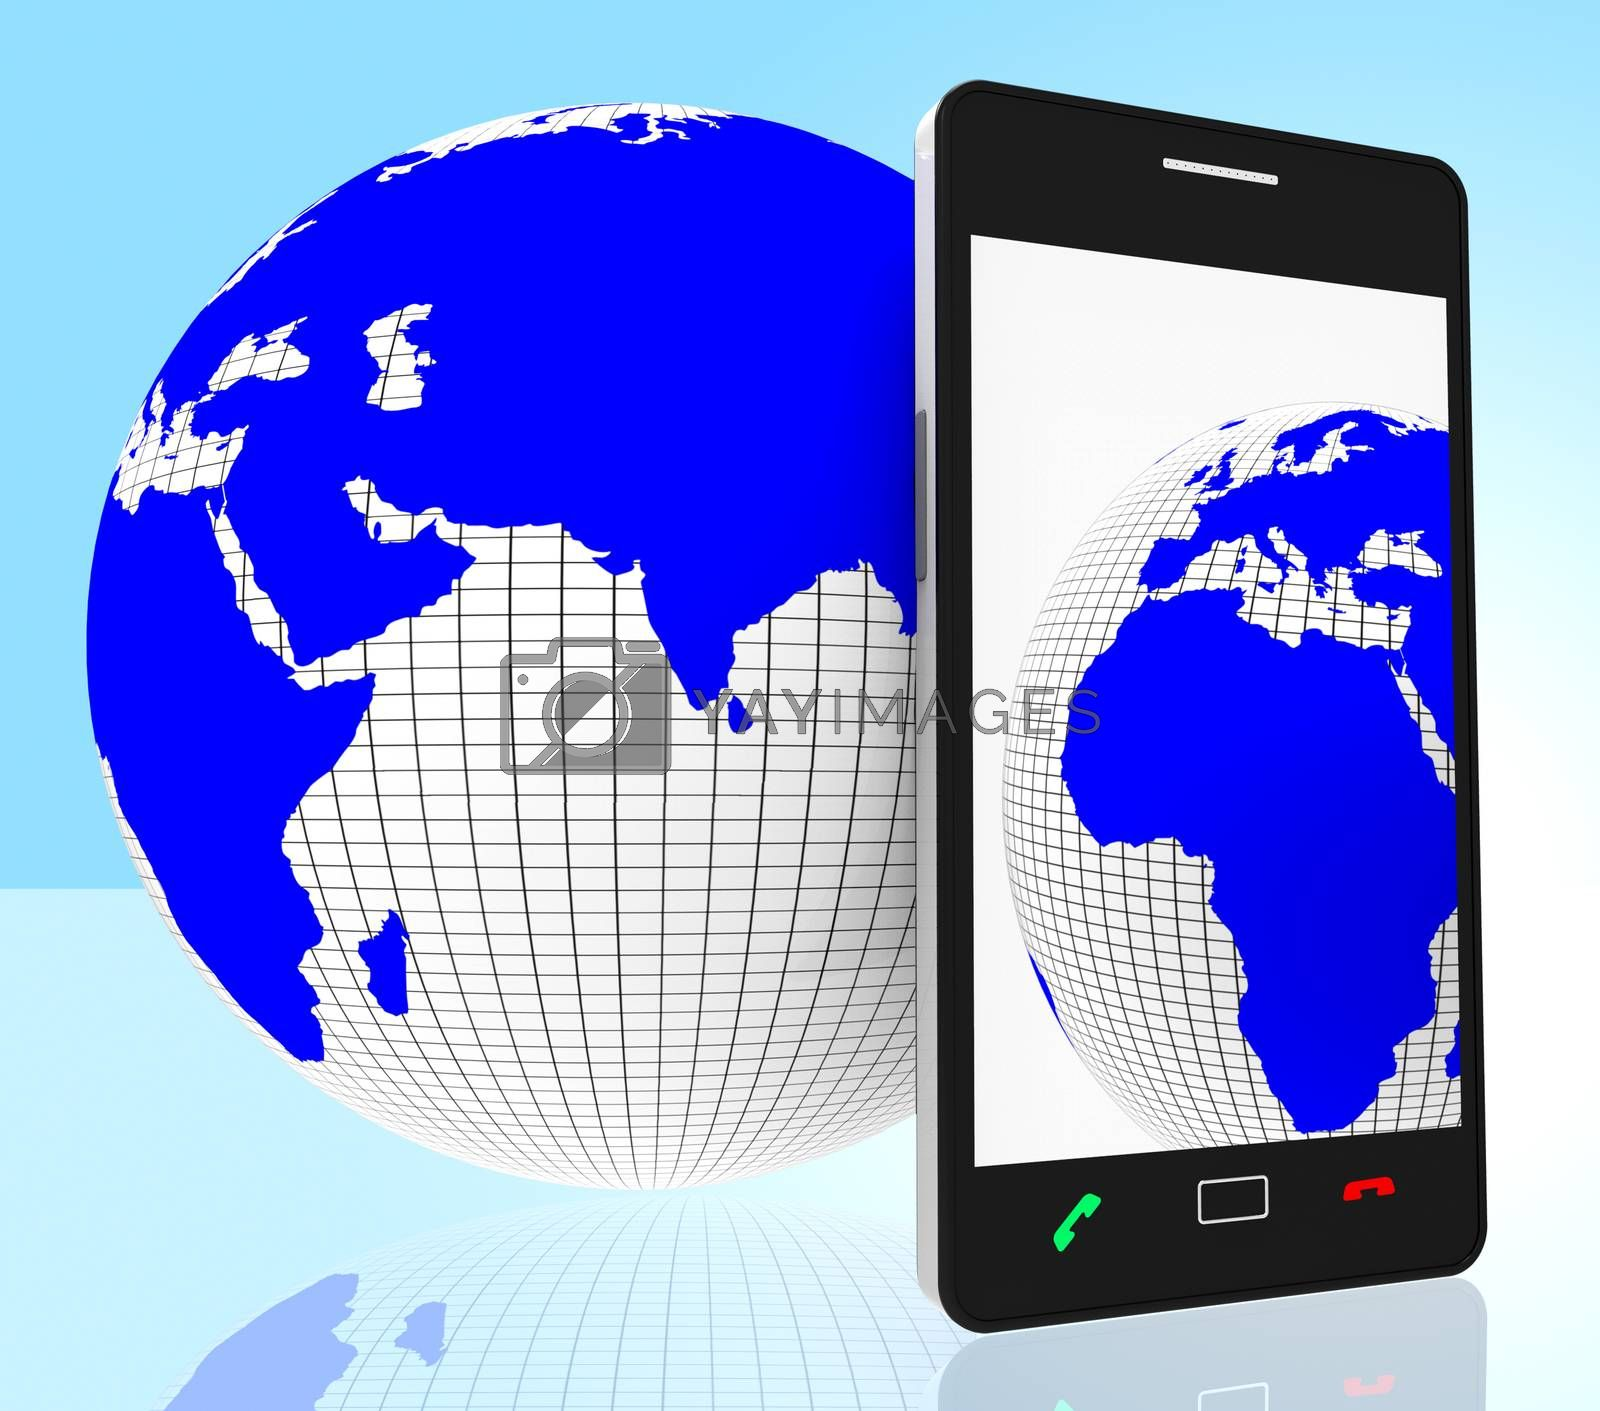 World Phone Indicates Web Site And Cellphone by stuartmiles